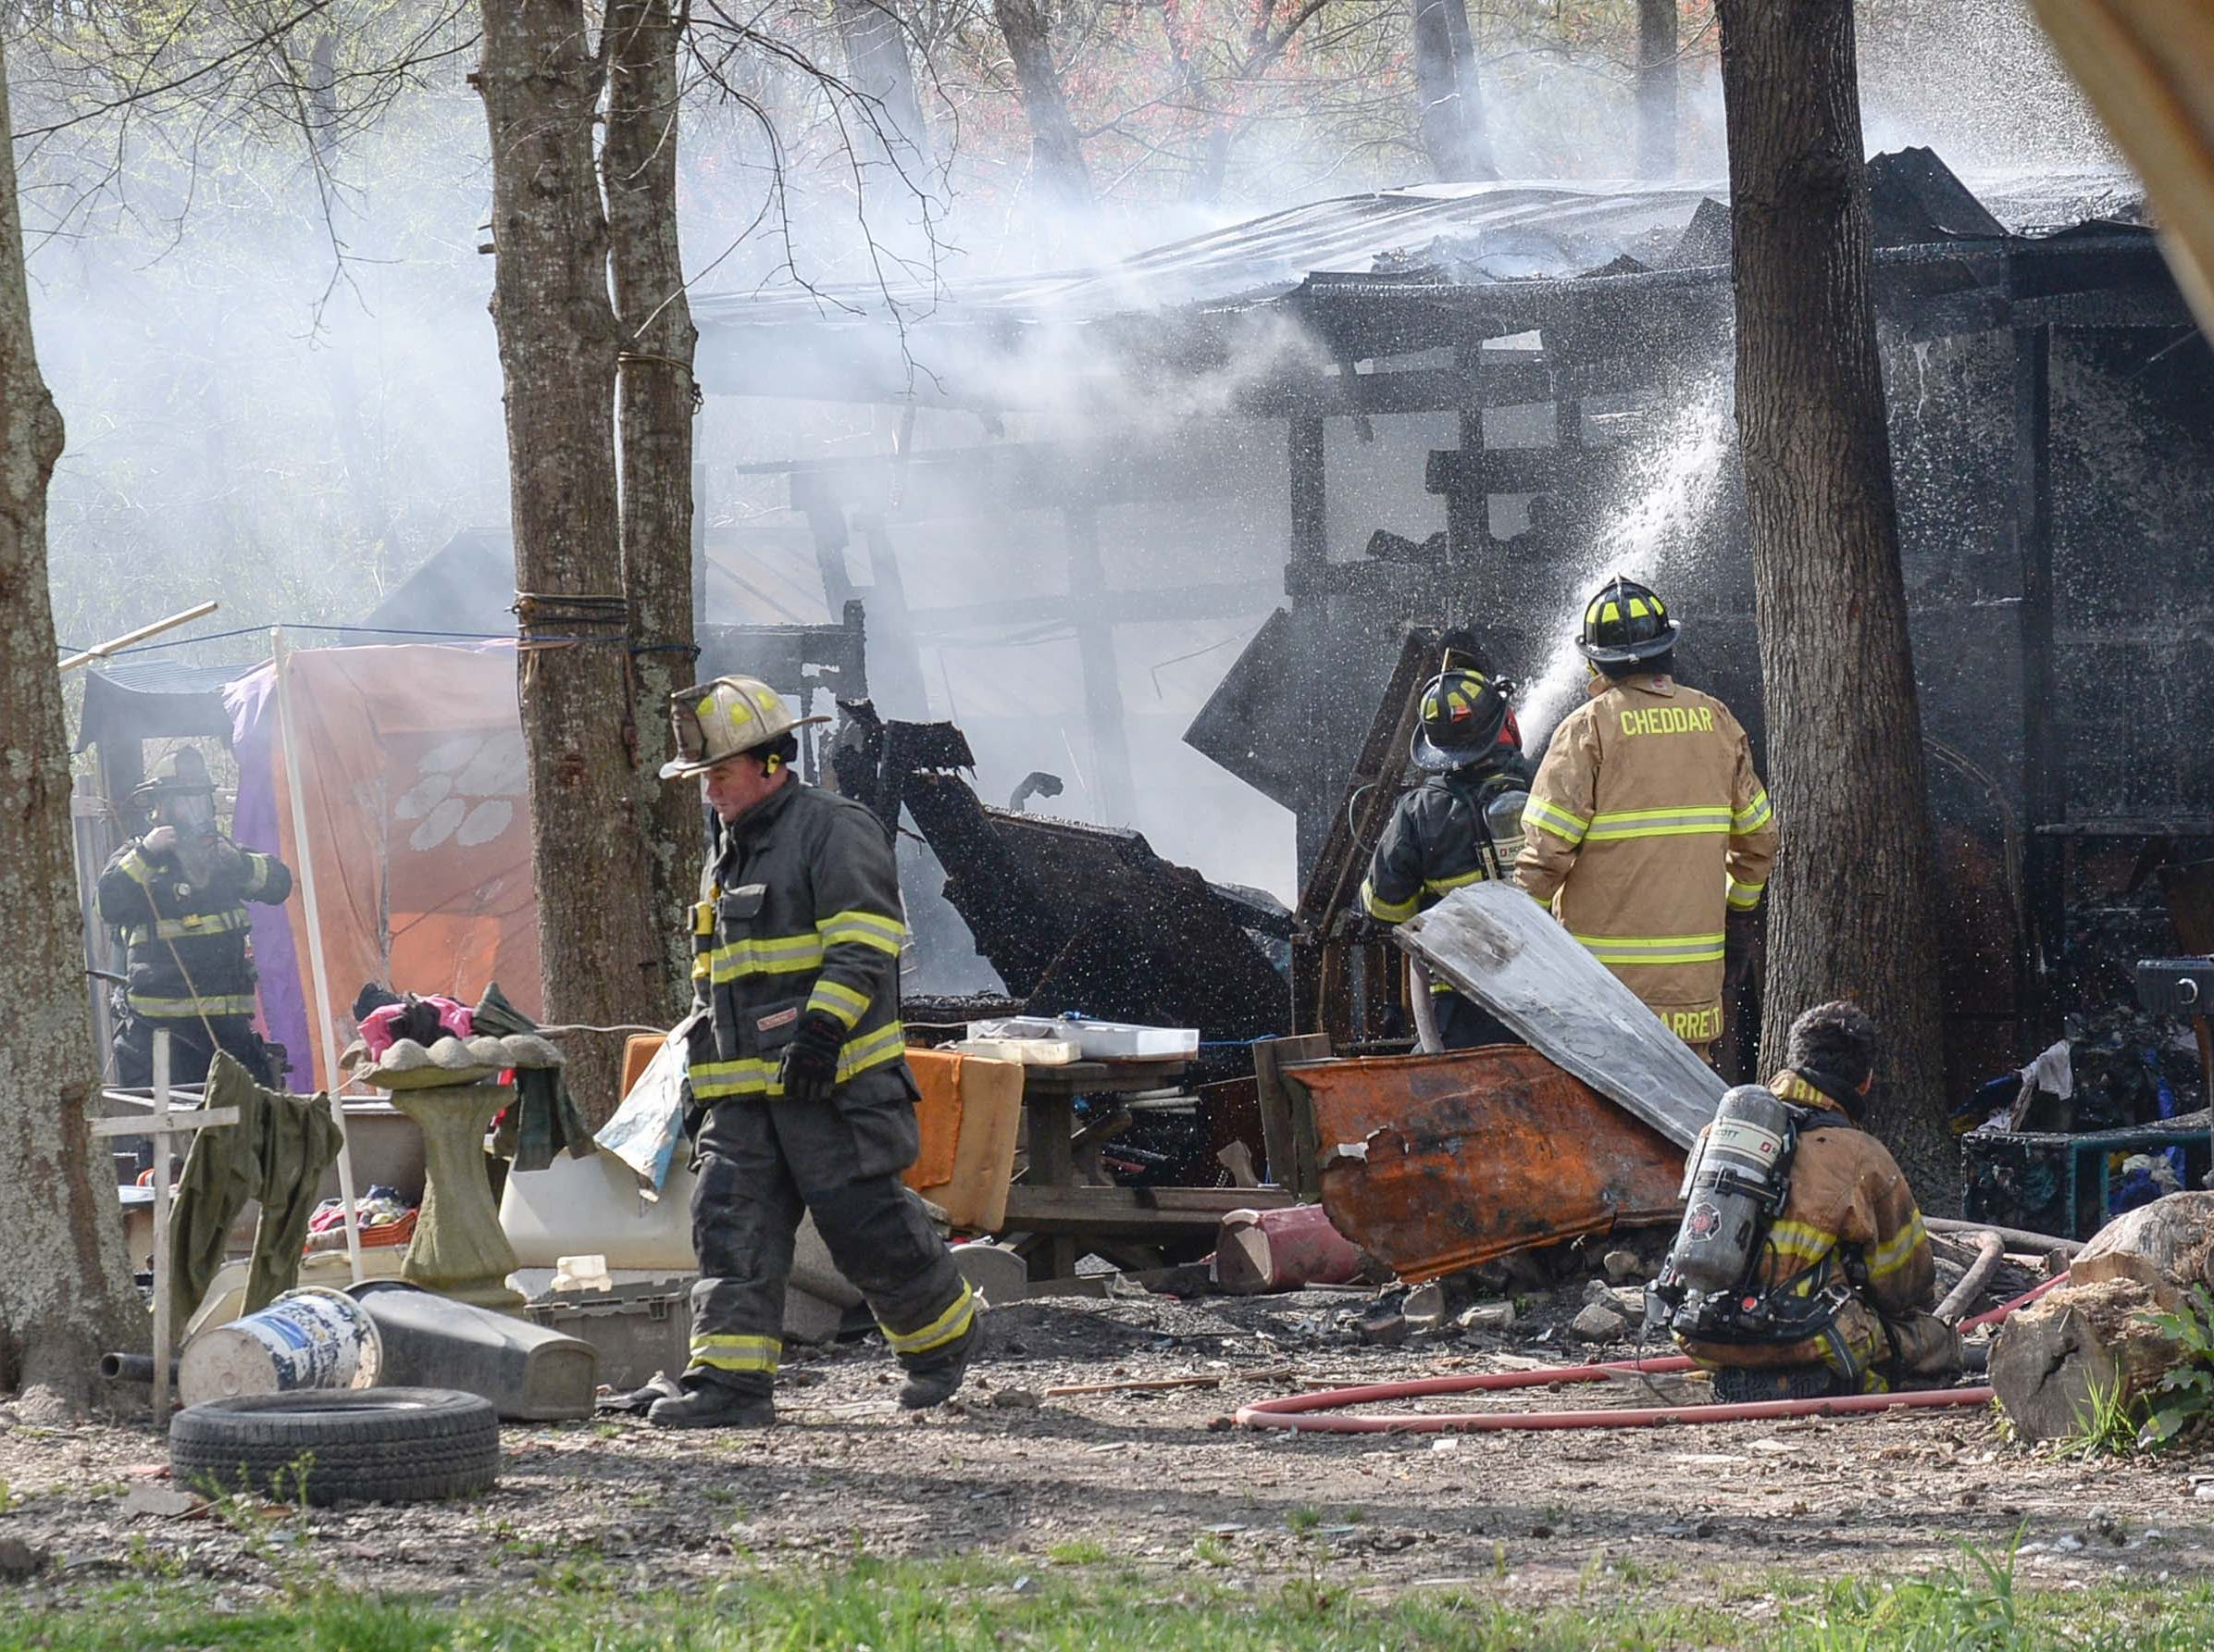 Chief Greg Elgin, left, walks near the house fire at the 800 block of Brazeale Street in Belton Tuesday, March 26, 2019. The man, woman, and dog at the home were unharmed at the fire which Cheddar fire responded to, with assist from Belton, Rock Springs and Belton EMS. Anderson County fire investigator Wendall Marshall was at the scene of the fire under investigation.